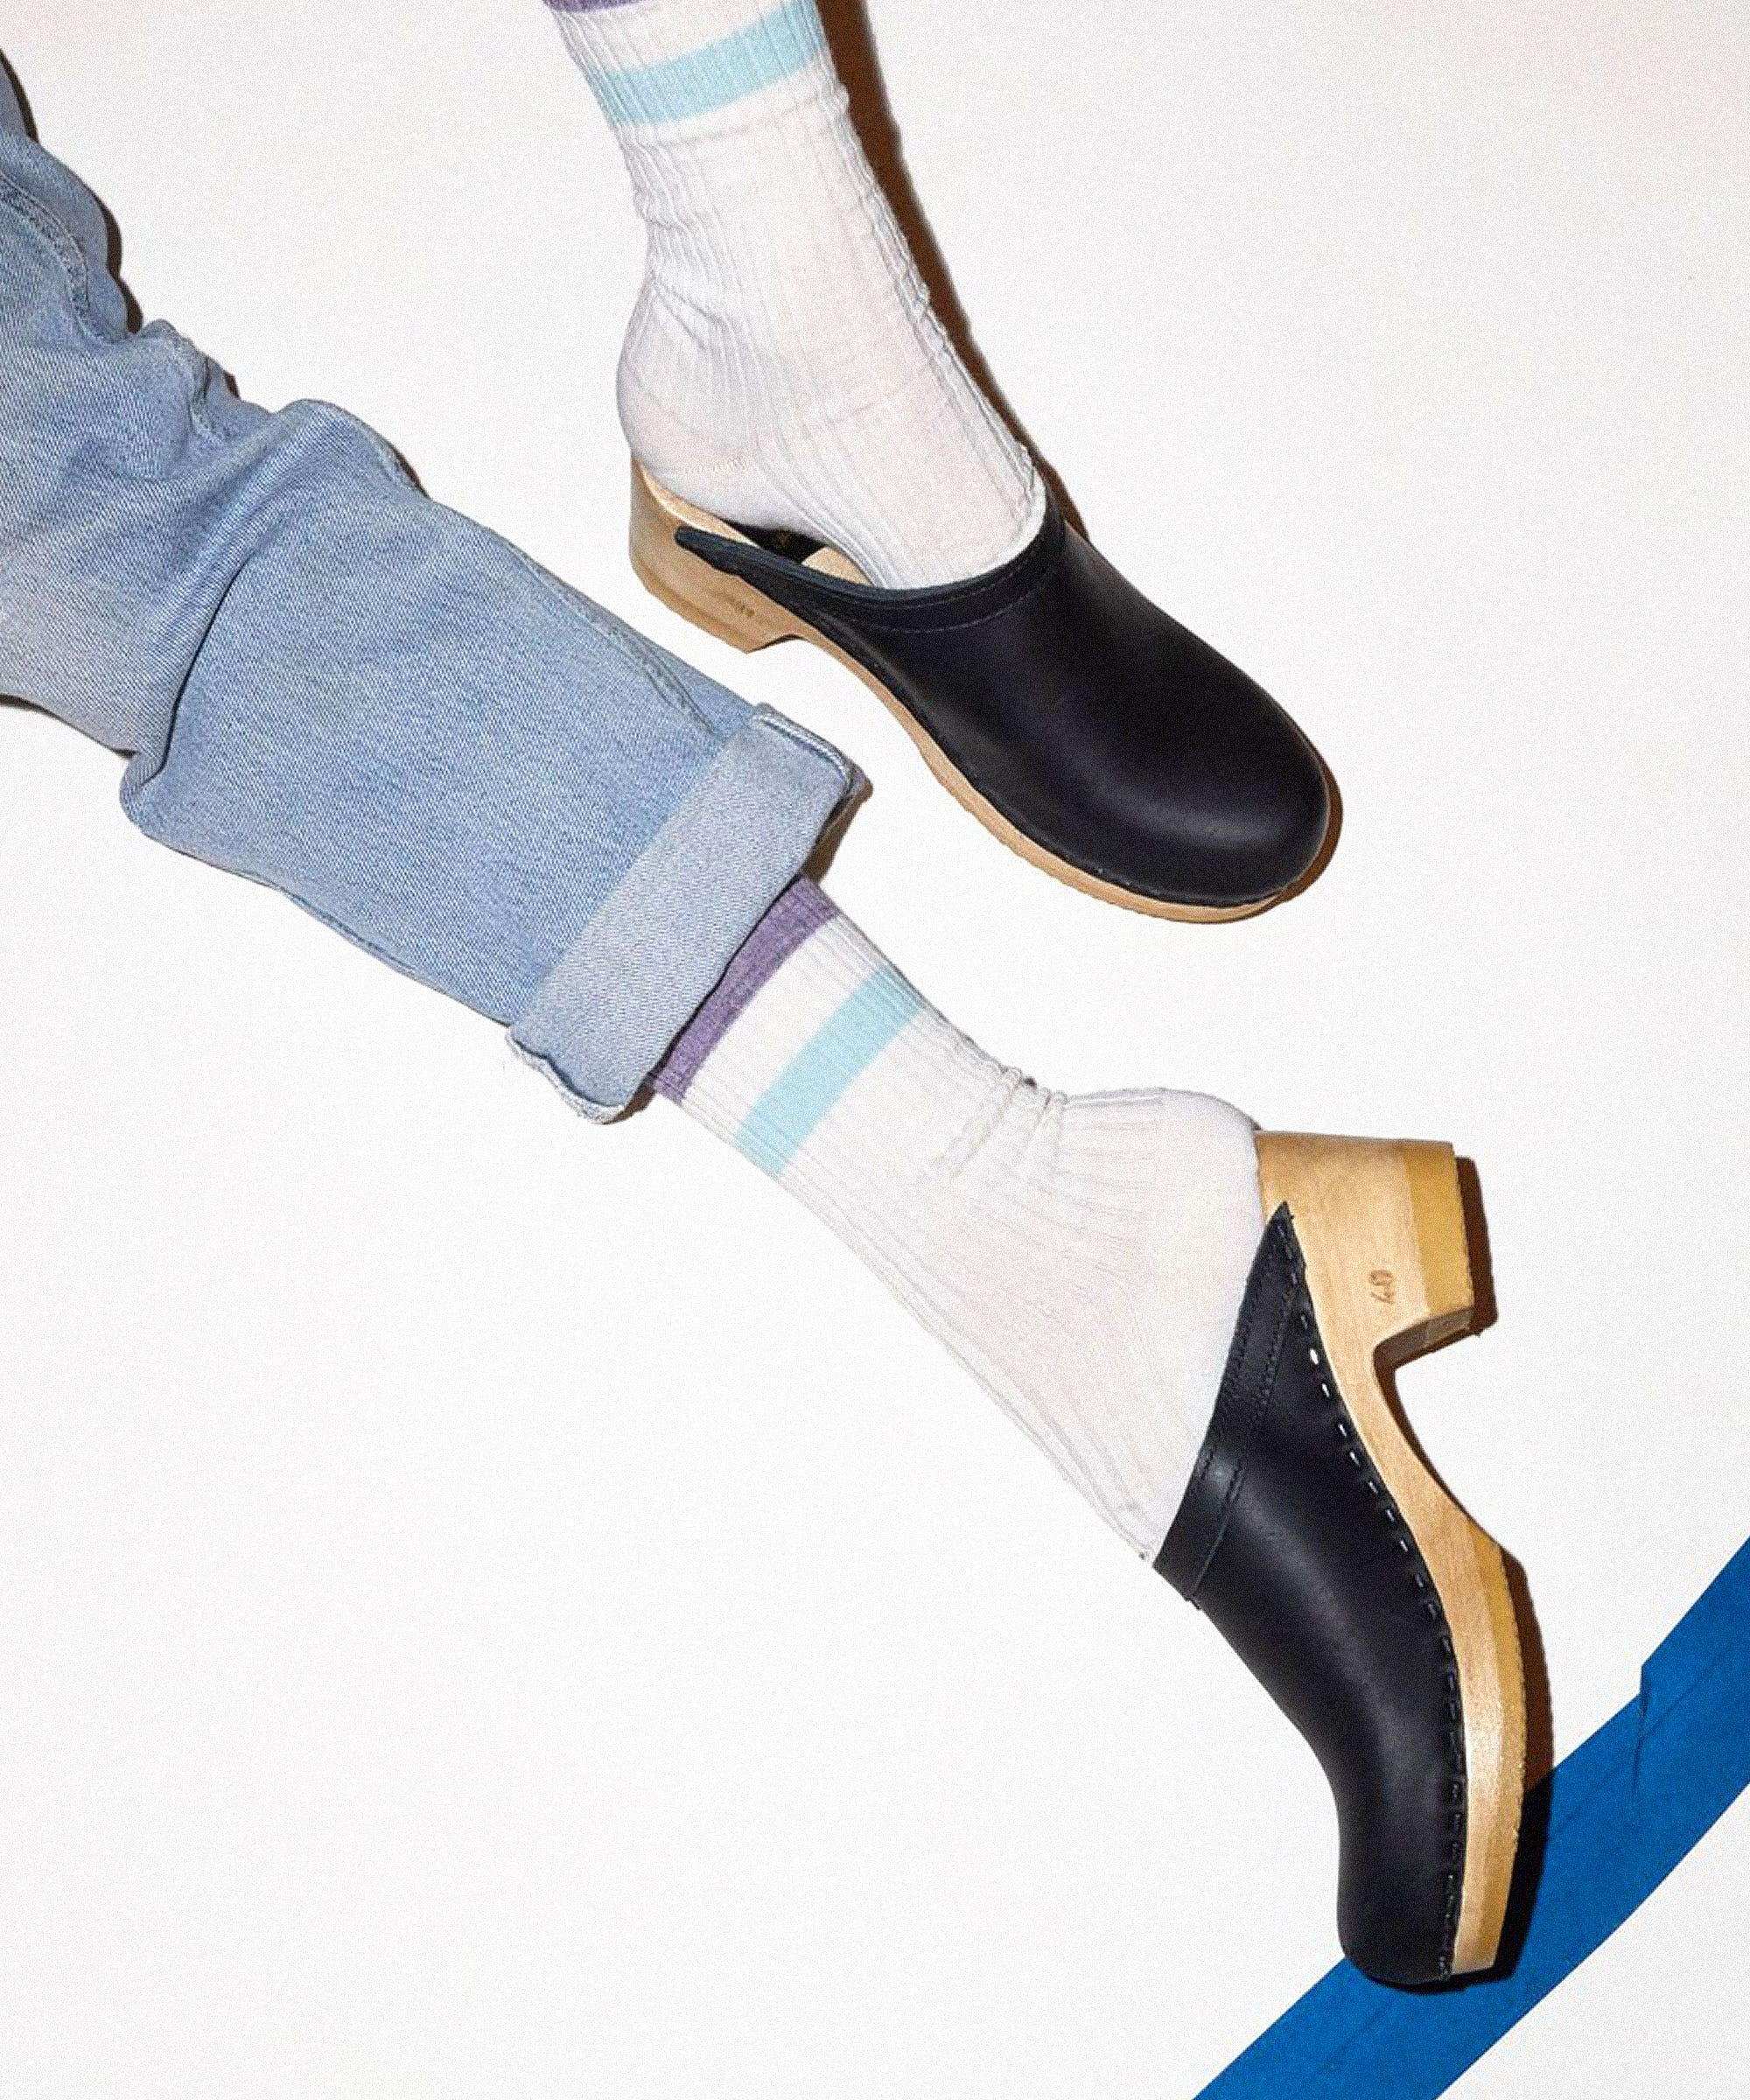 2019 Is The Year Clogs Are Finally